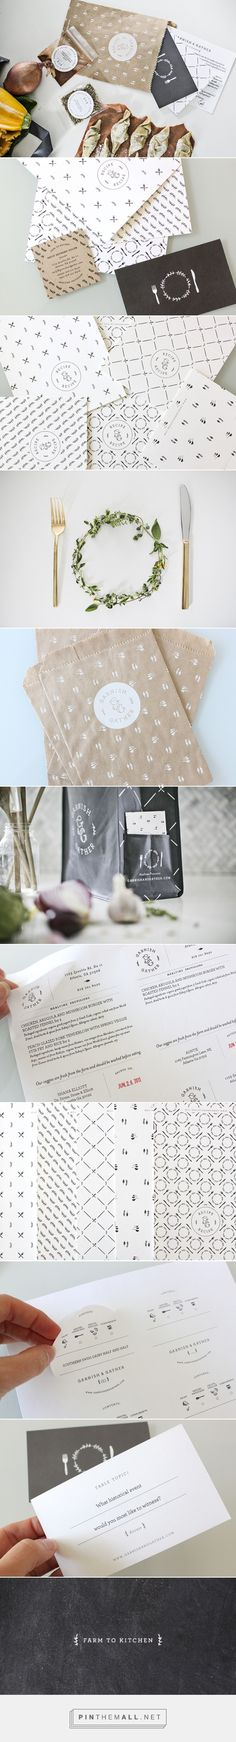 Garnish & Gather by Stitch Design Co curated by Packaging Diva PD. Yummy packaging and best of all this company's based in Atlanta - created via http://pinthemall.net